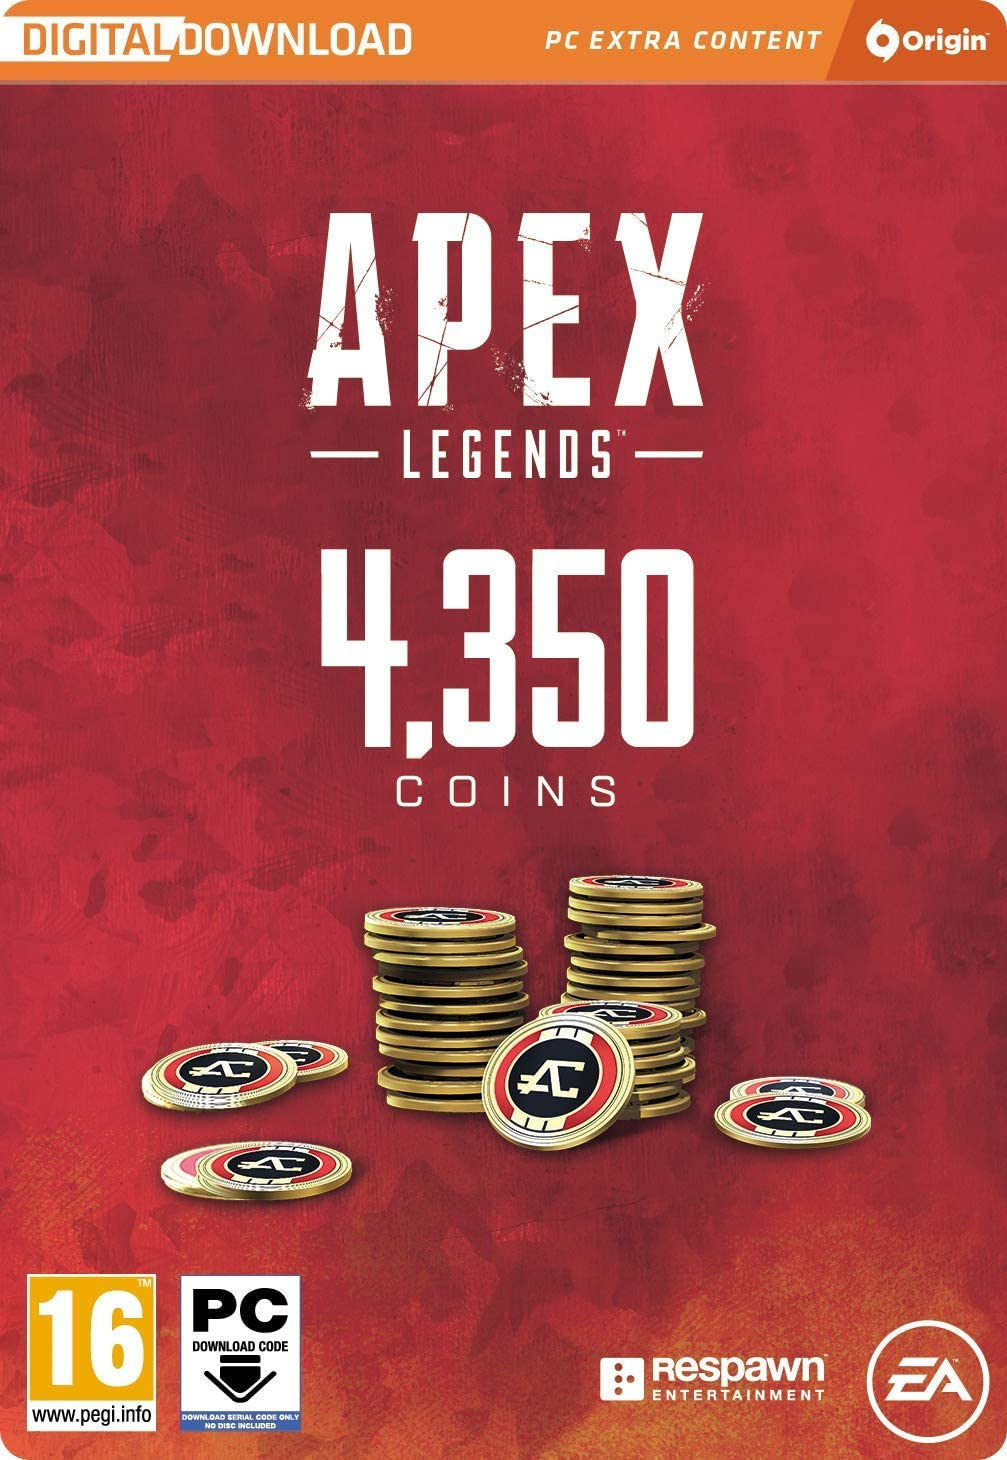 APEX Legends - 4350 COINS | PC Download - Origin Code